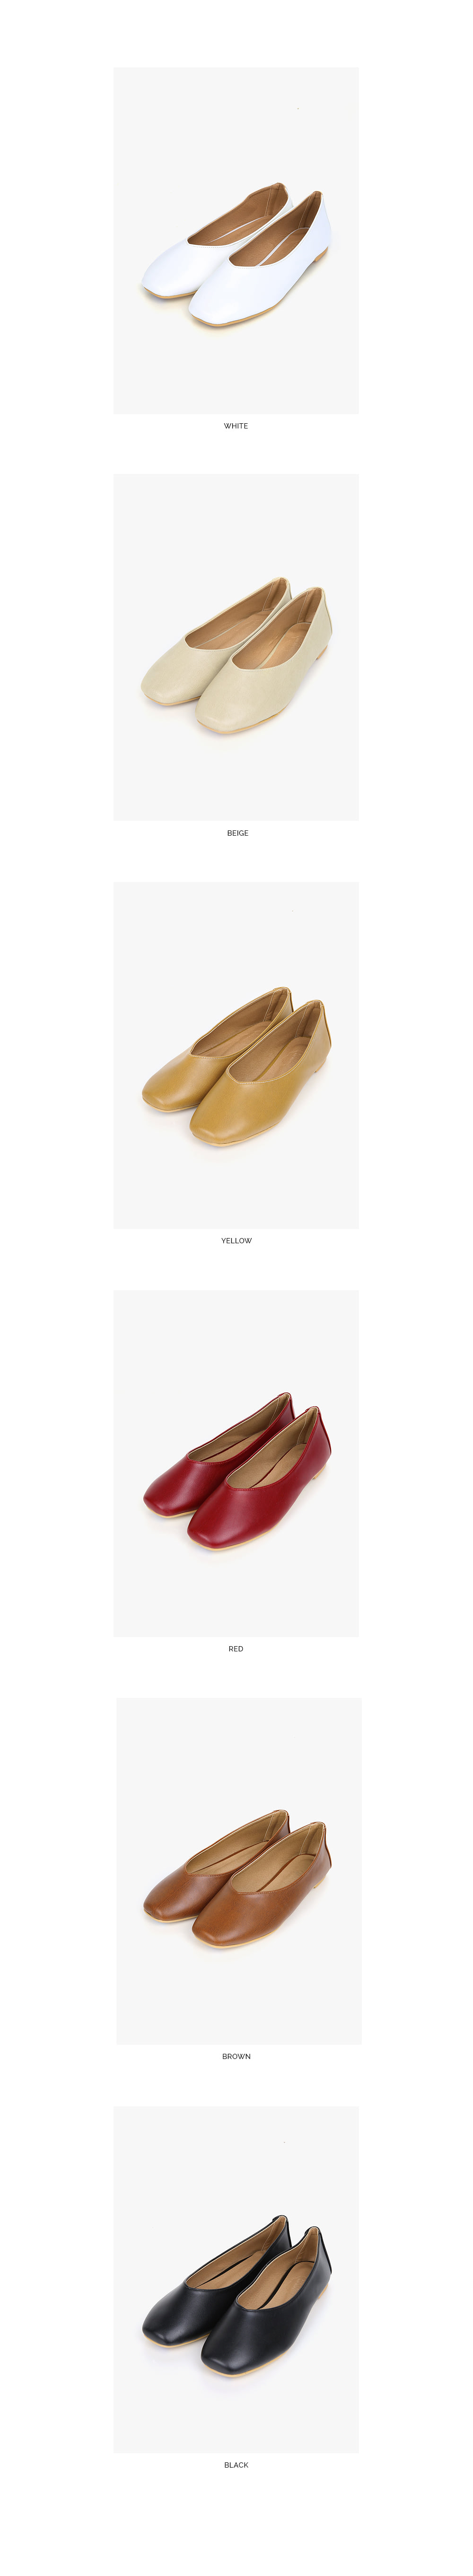 mainly settle flat shoes (230-250)